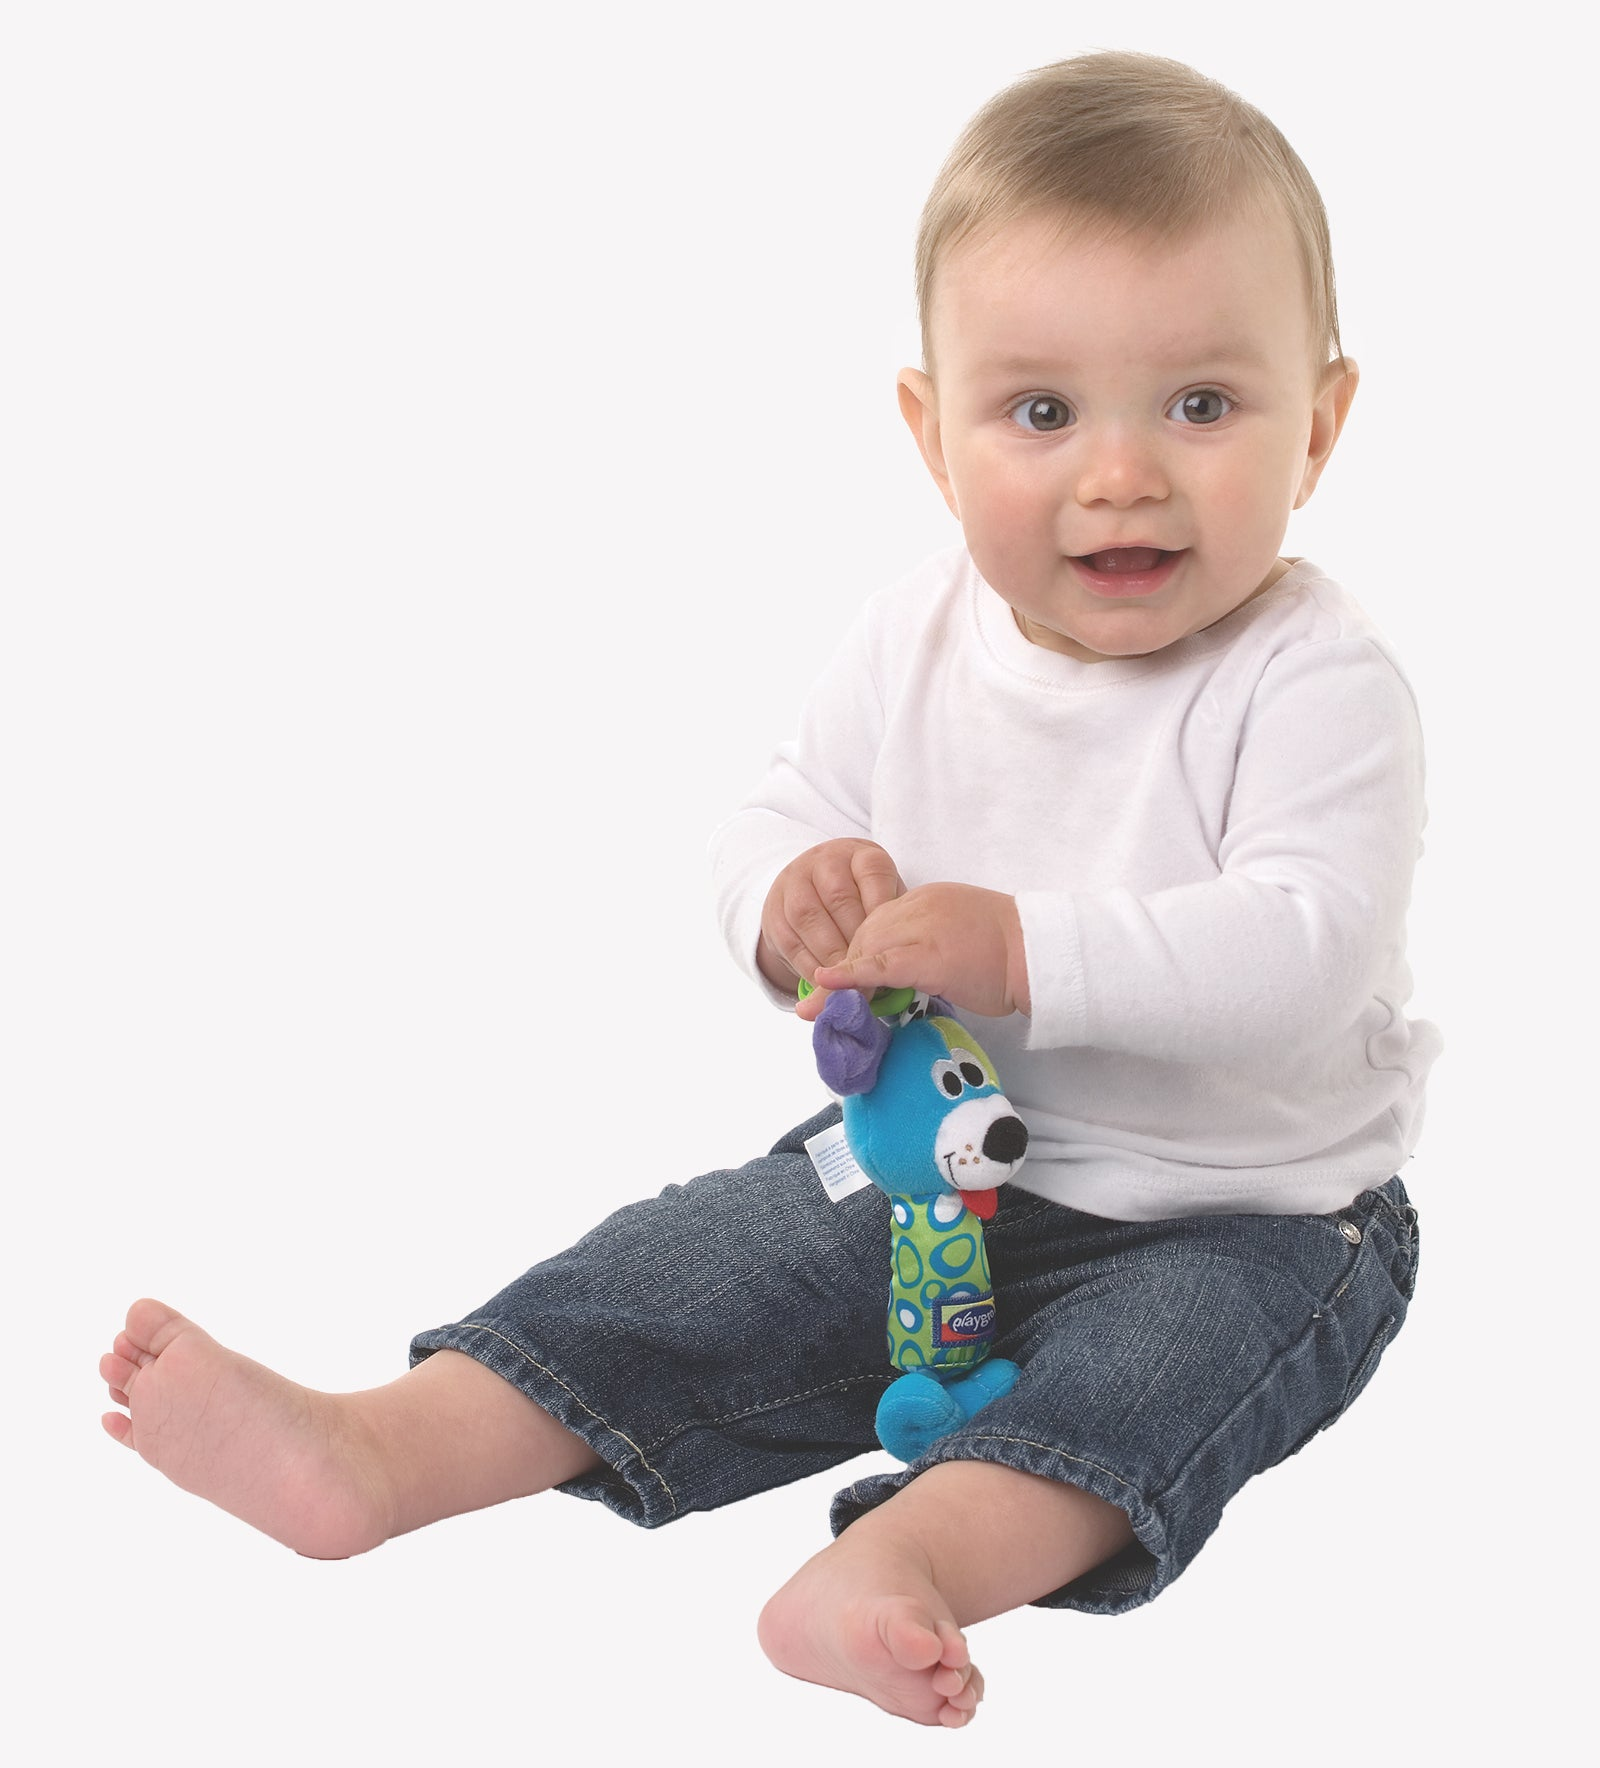 A baby boy holding PLaygro Tinker Toy on his hand